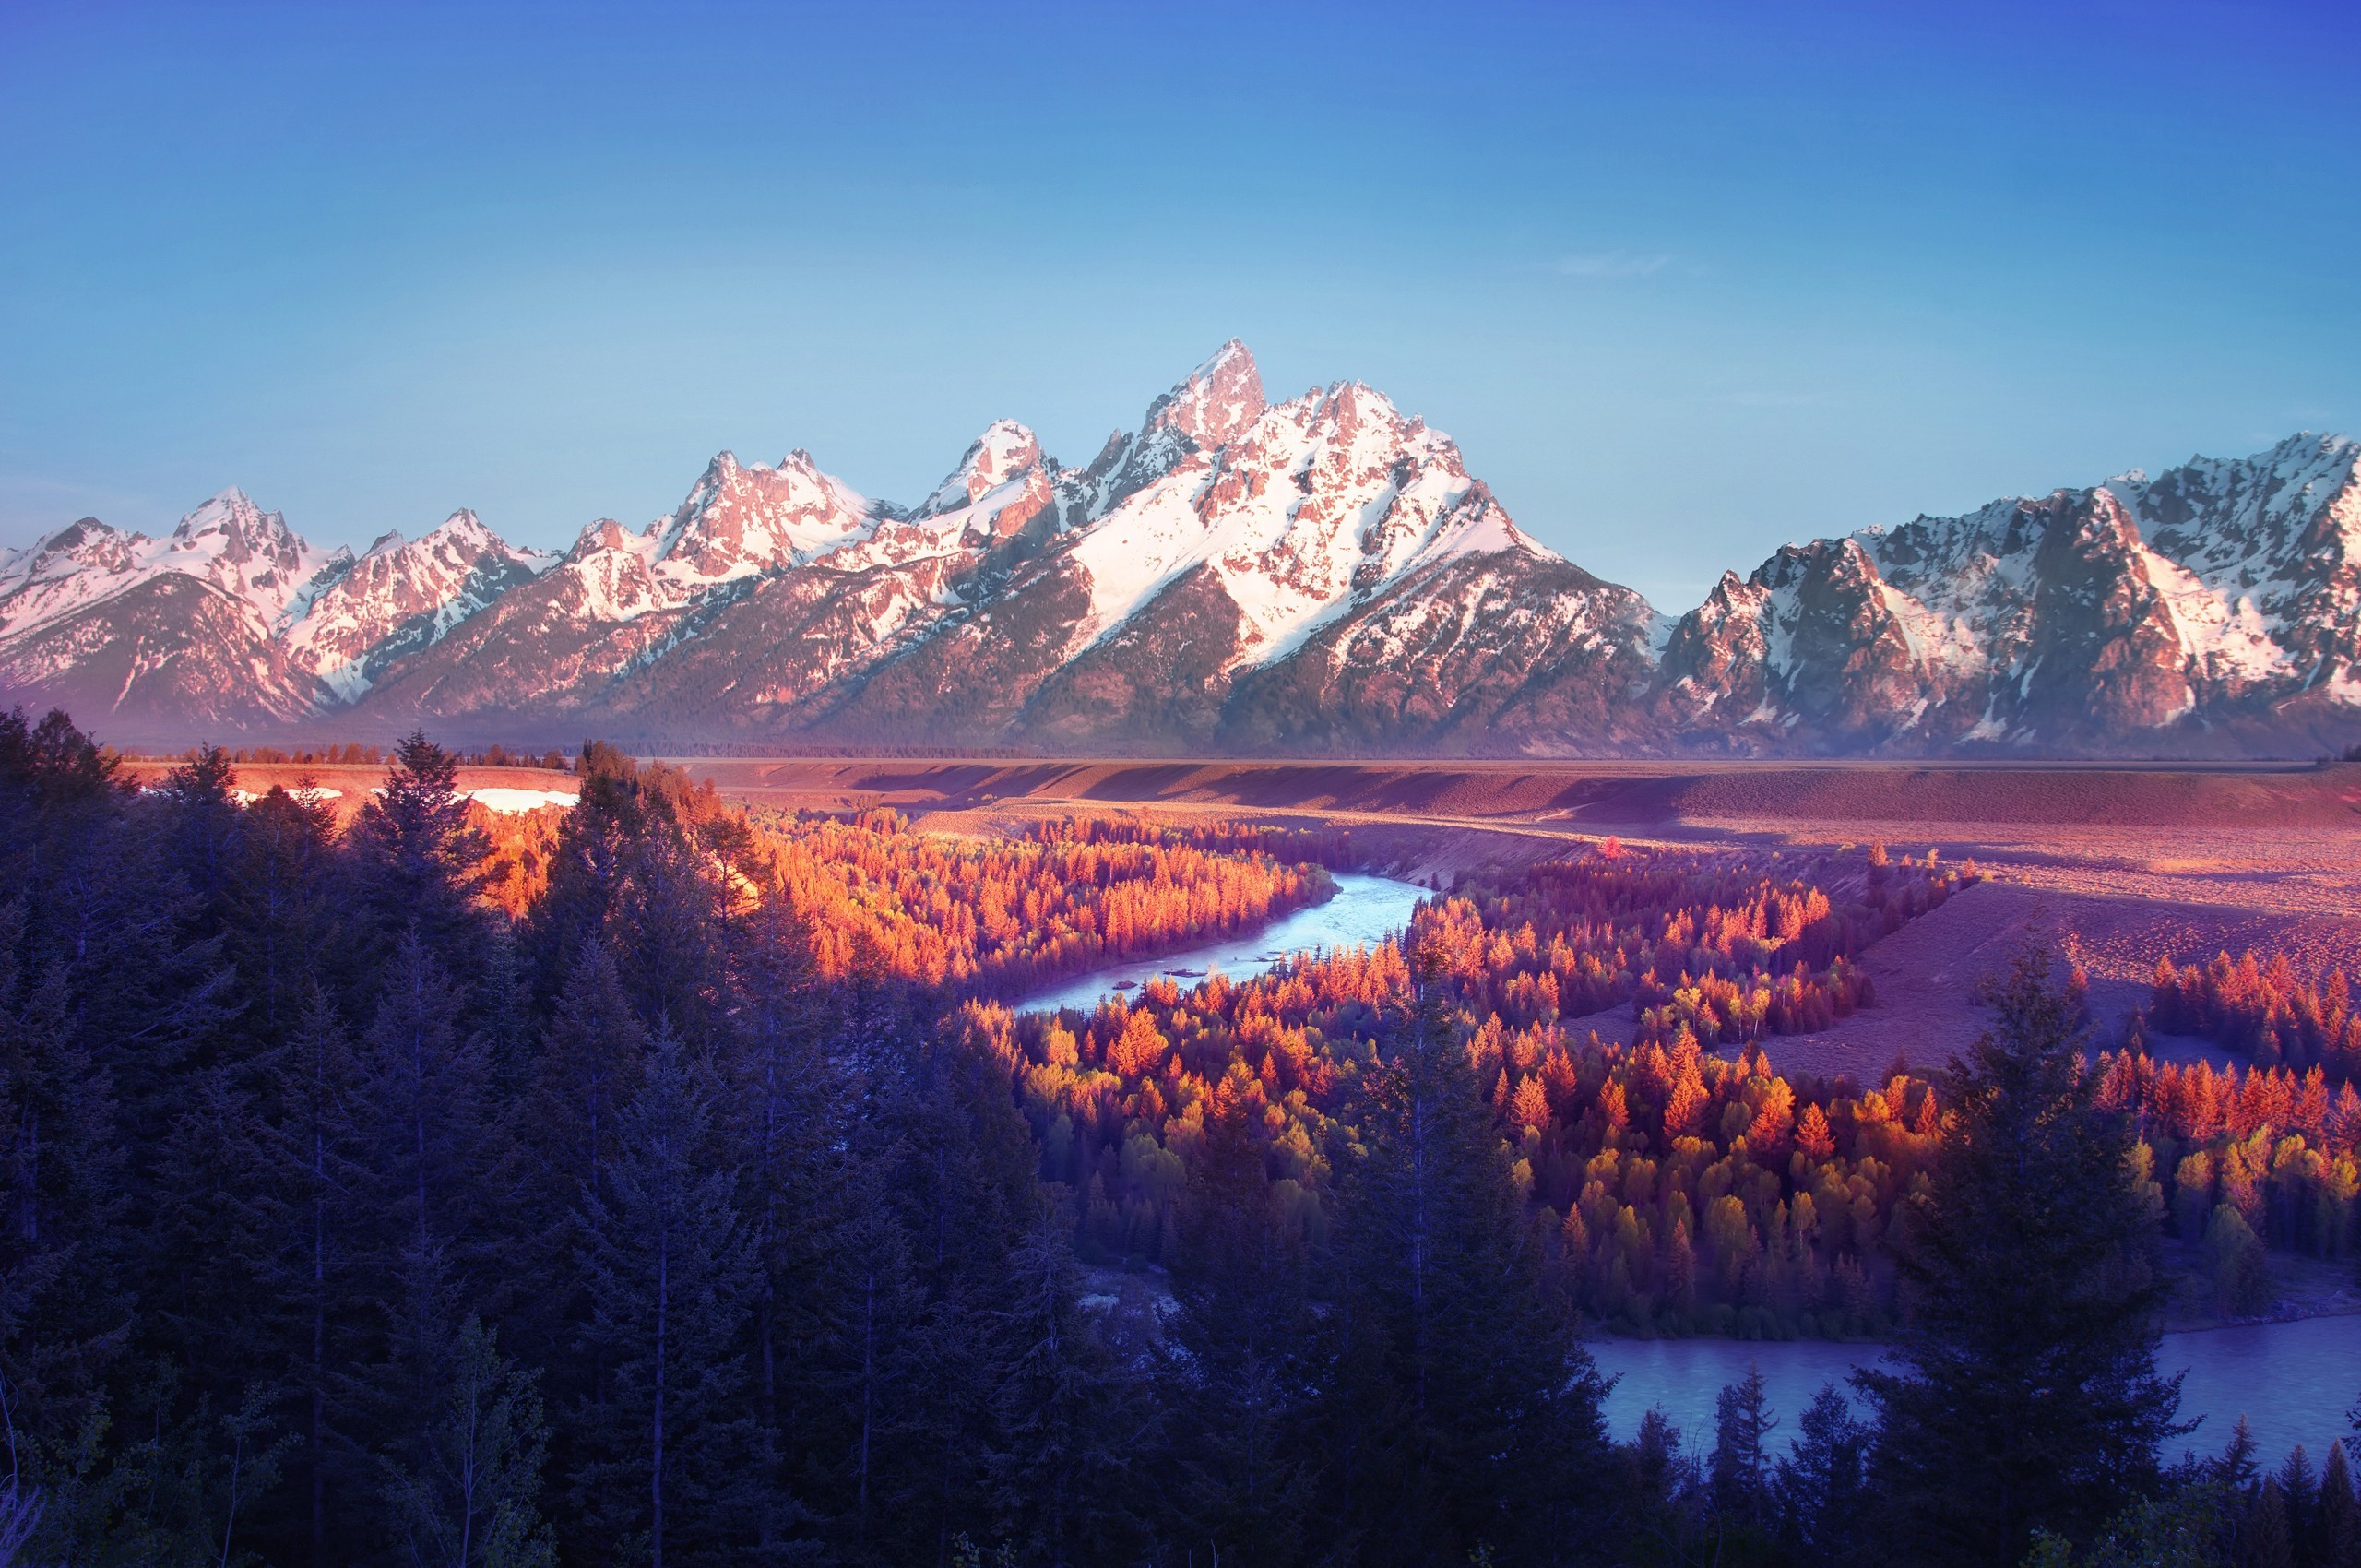 4585785 mountains Wyoming landscape snake river overlook 2560x1700